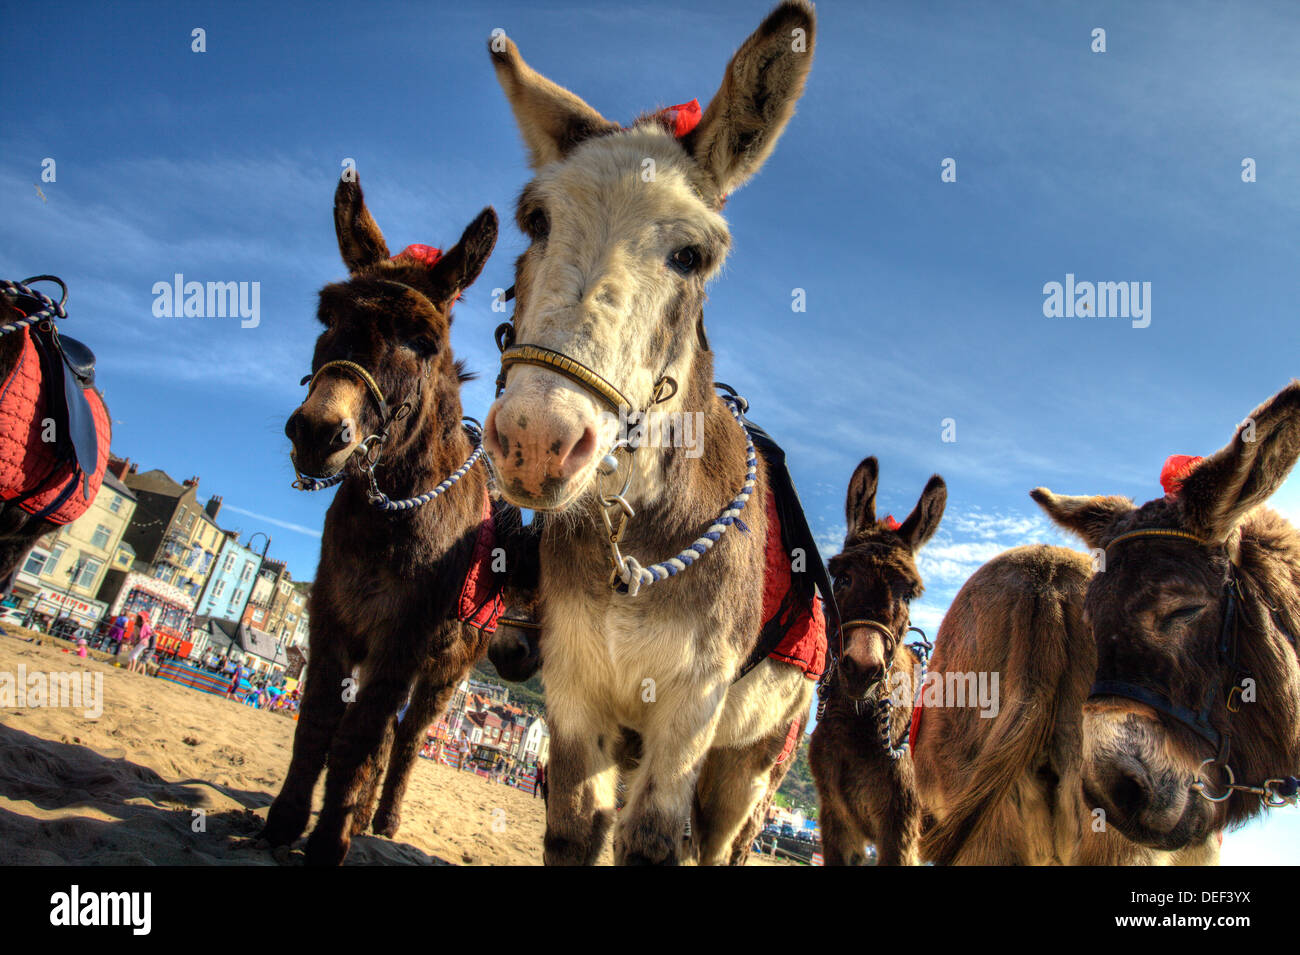 Donkeys on the beach at Scarborough - Stock Image